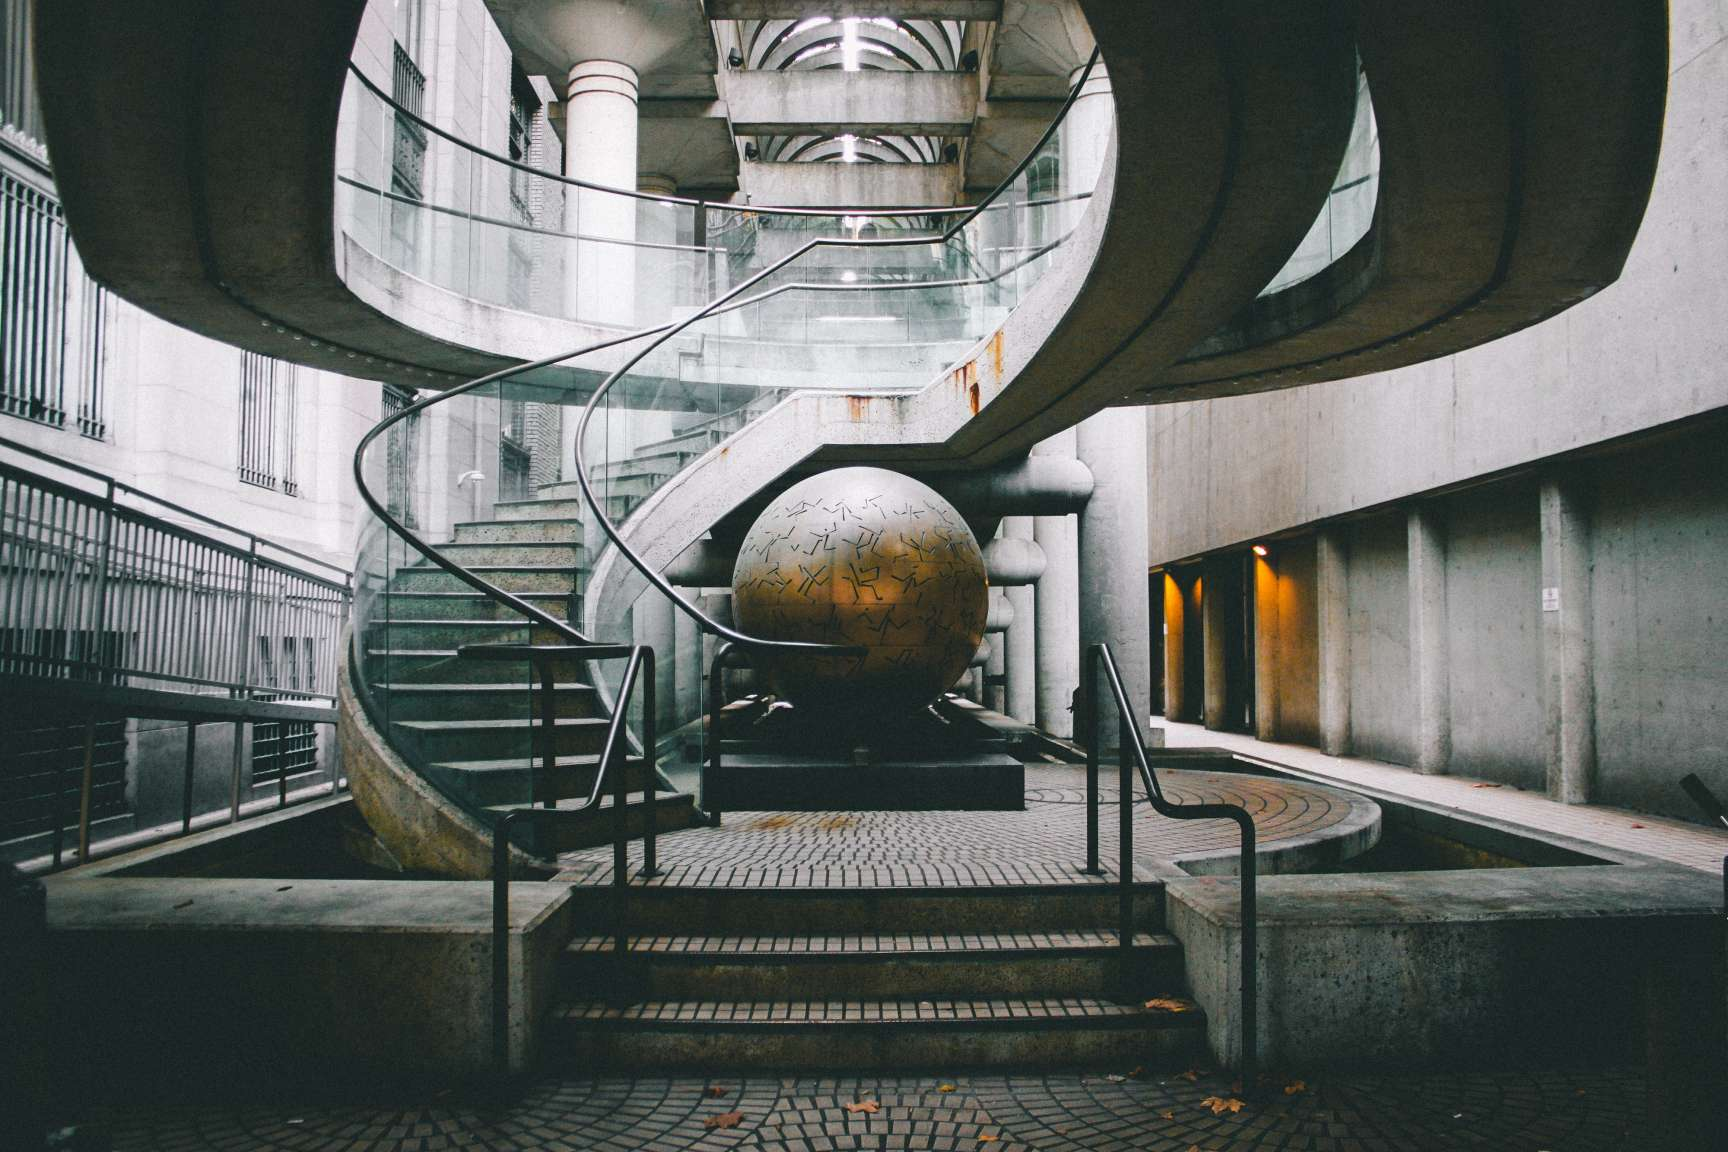 Sculpture in a building surrounded by a circular staircase